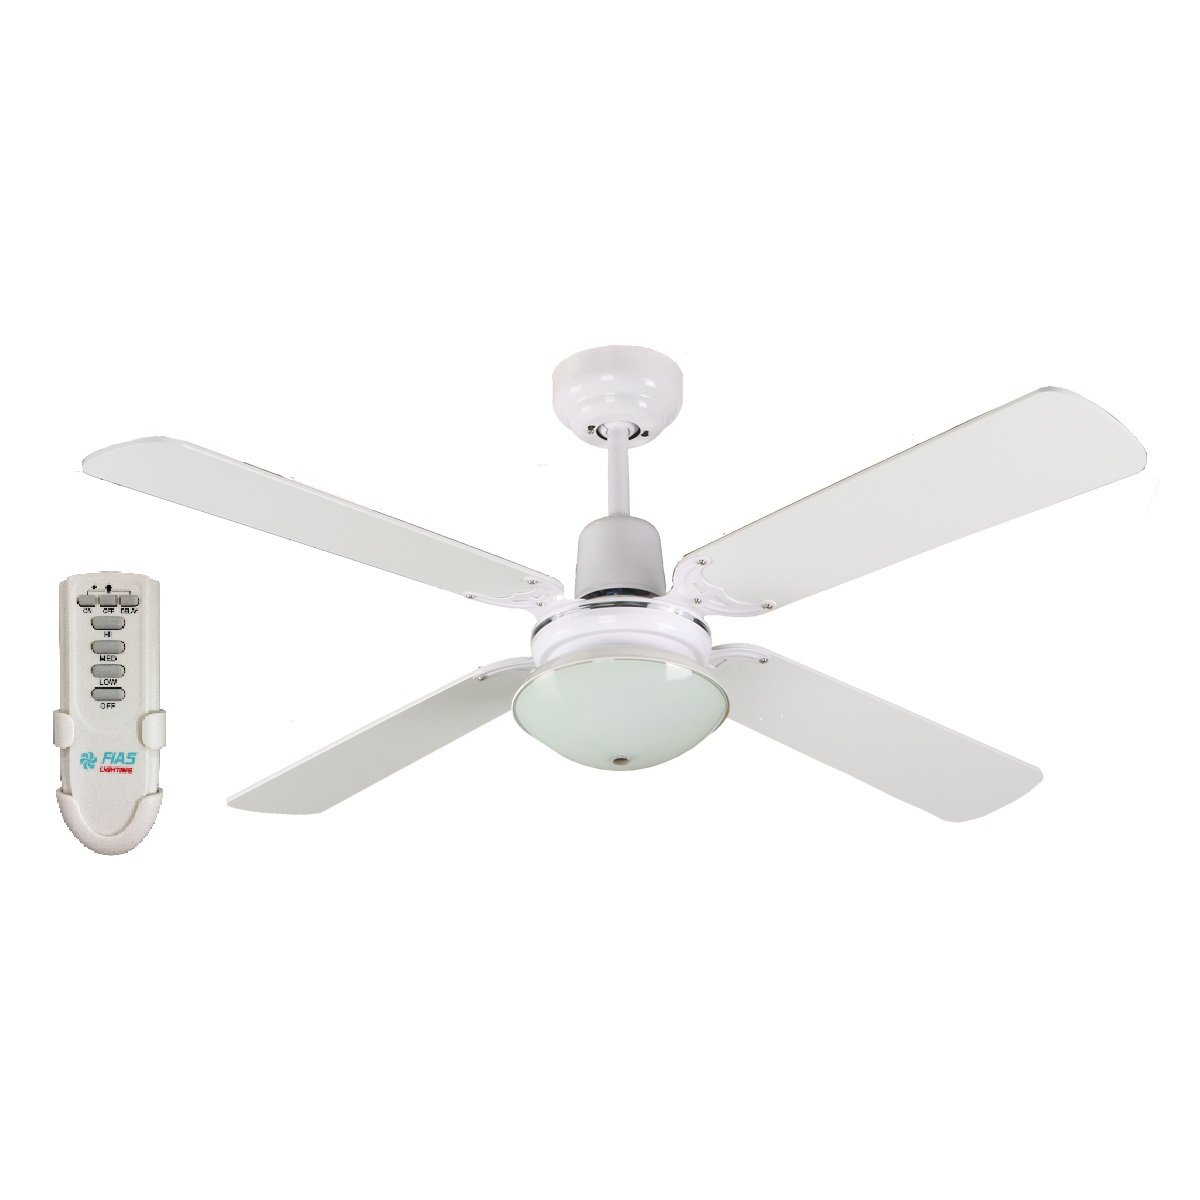 Bunnings Gu10 Ramo 48 Inch Ceiling Fan With Light And Remote Control